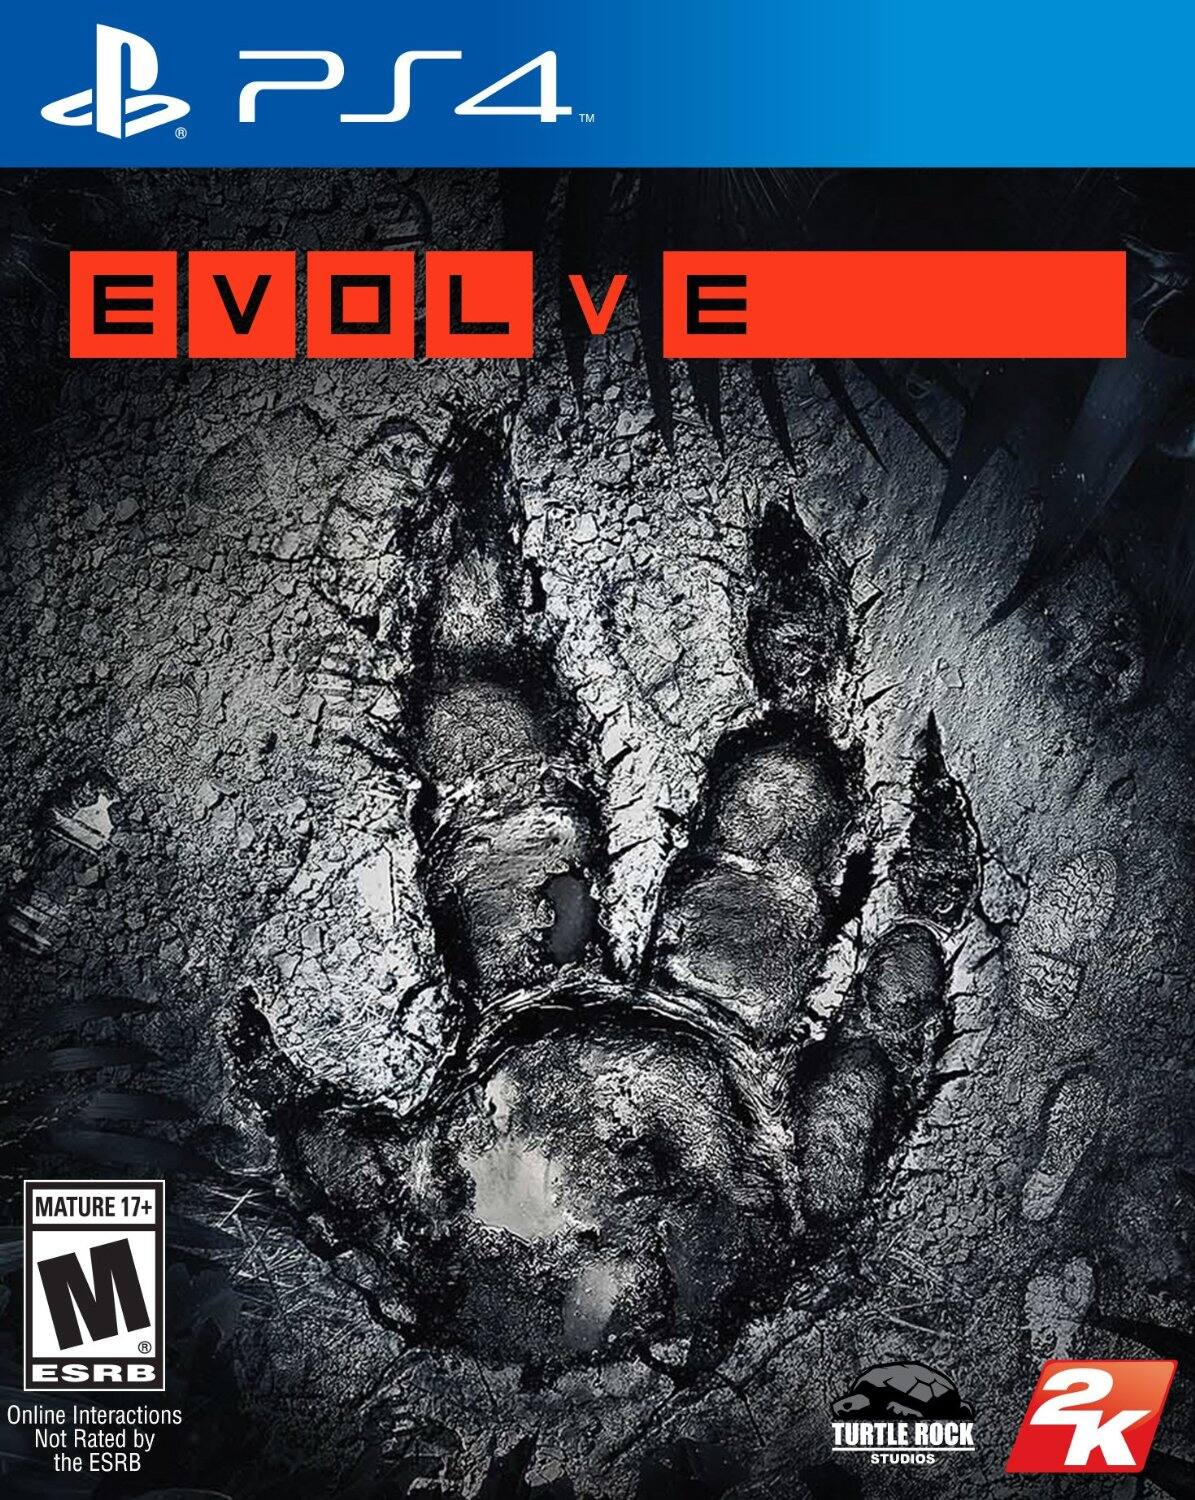 Evolve (PC, Xbox one, ps4) $10 (or $8 with GCU)